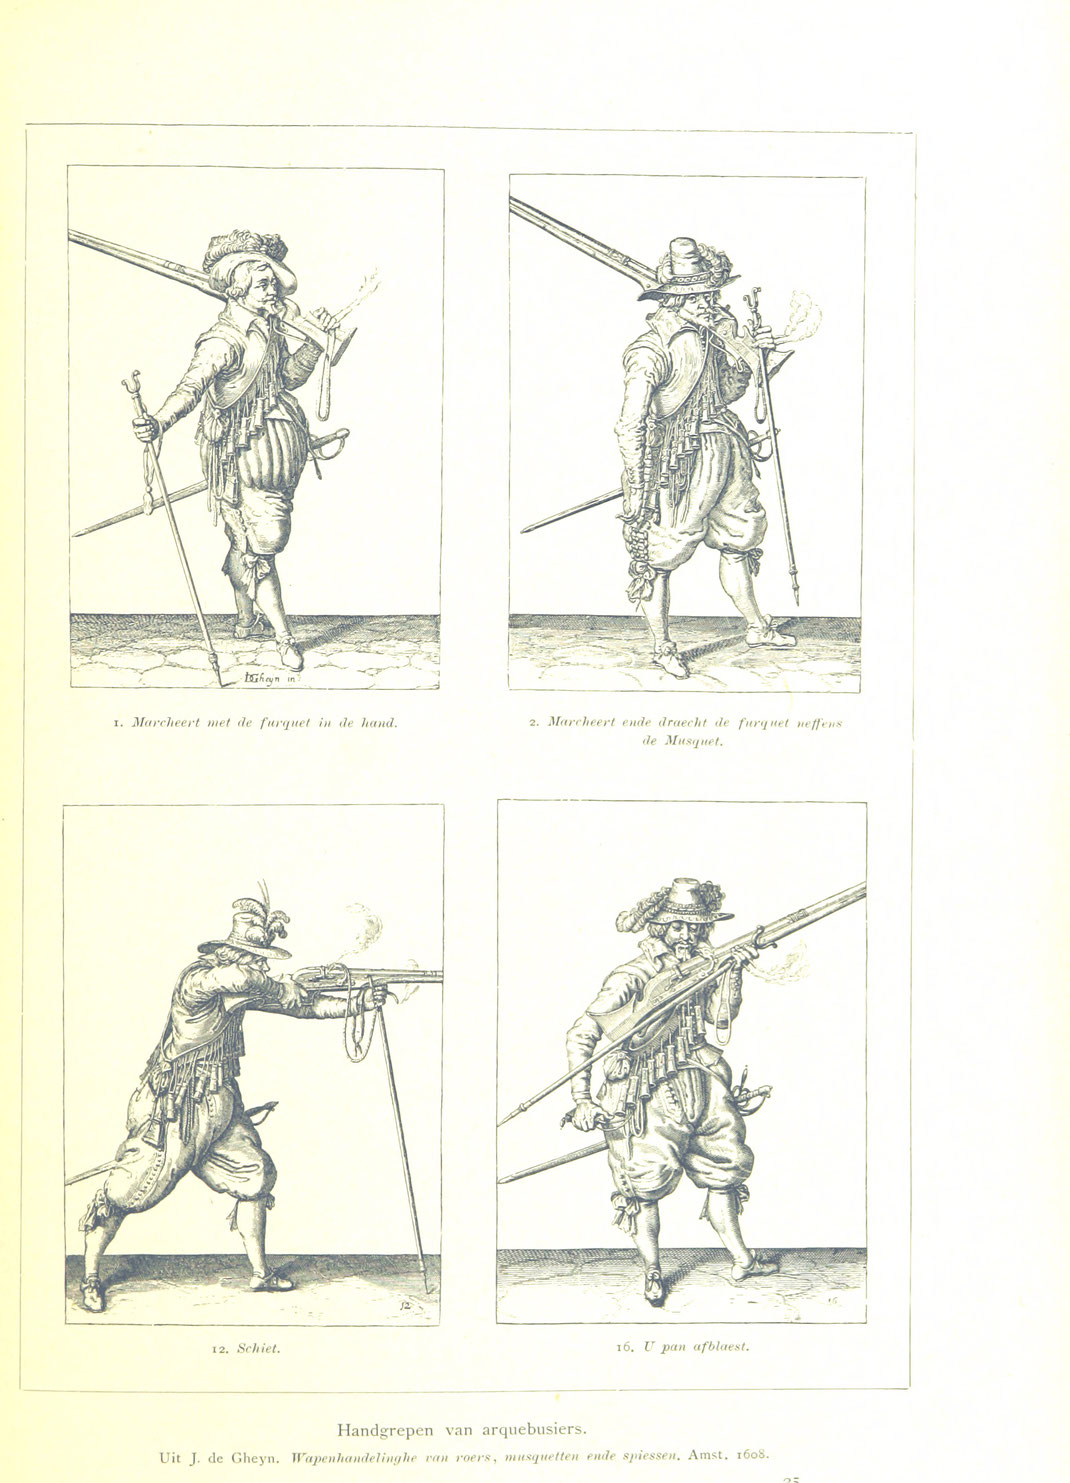 Four pictures of musketeer constellations during the fight